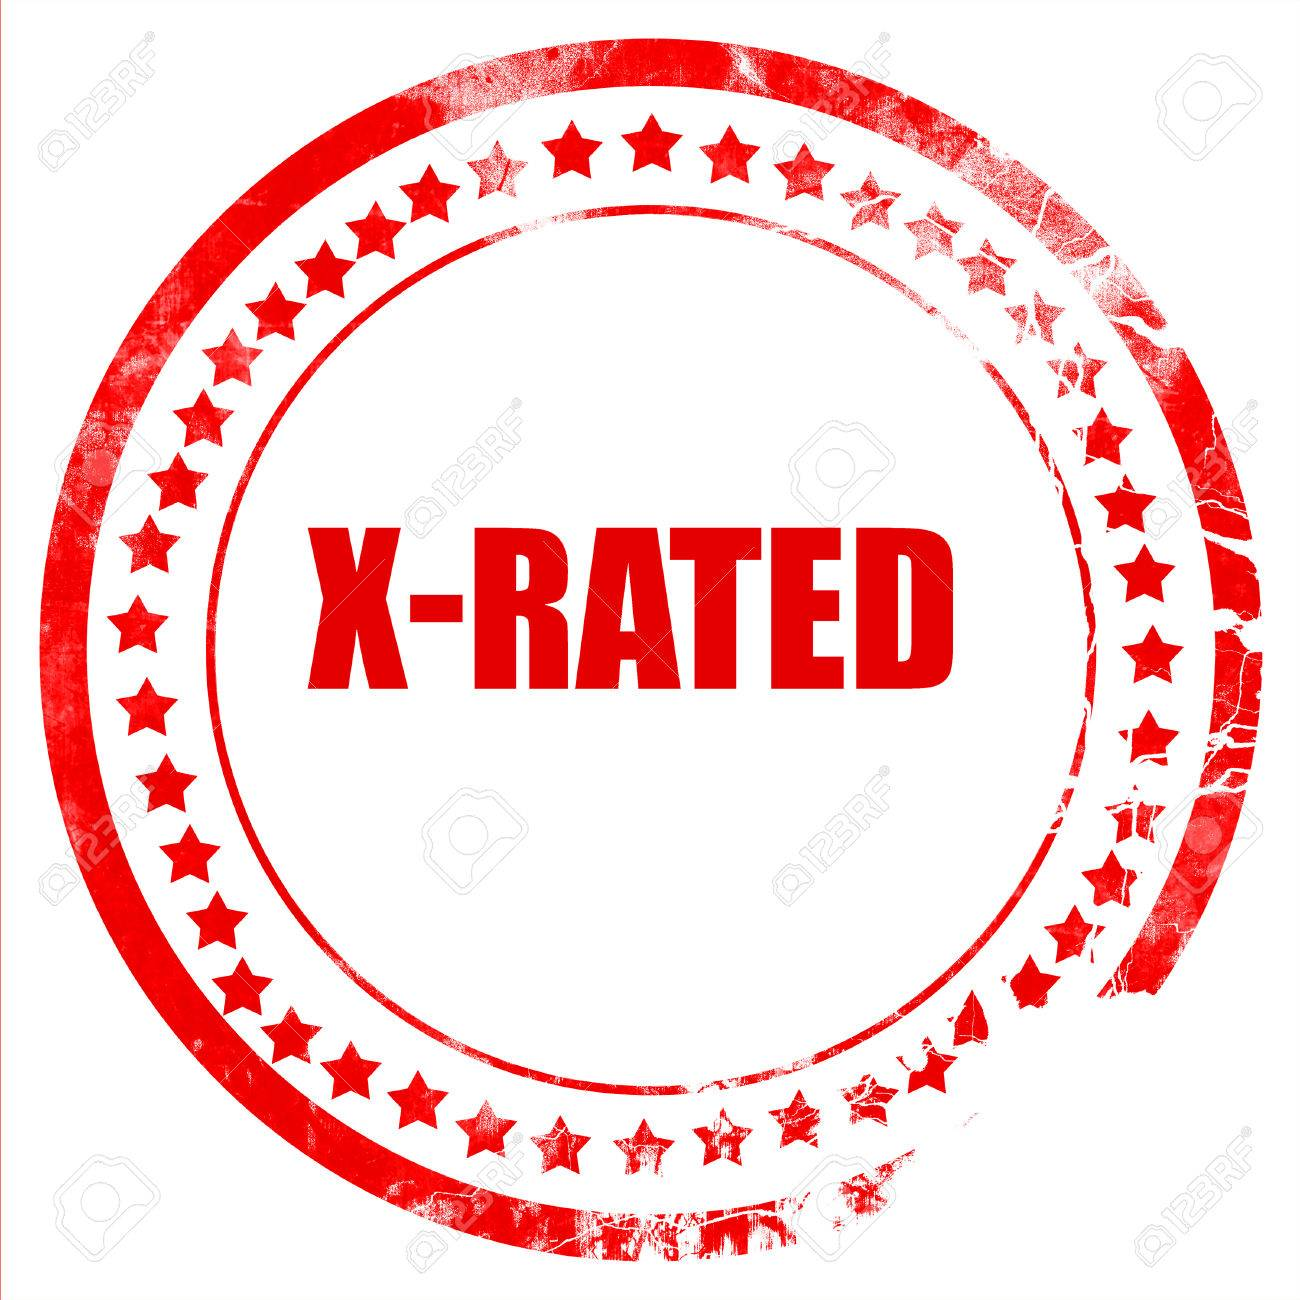 x-rated sign with some nice vivid colors stock photo, picture and